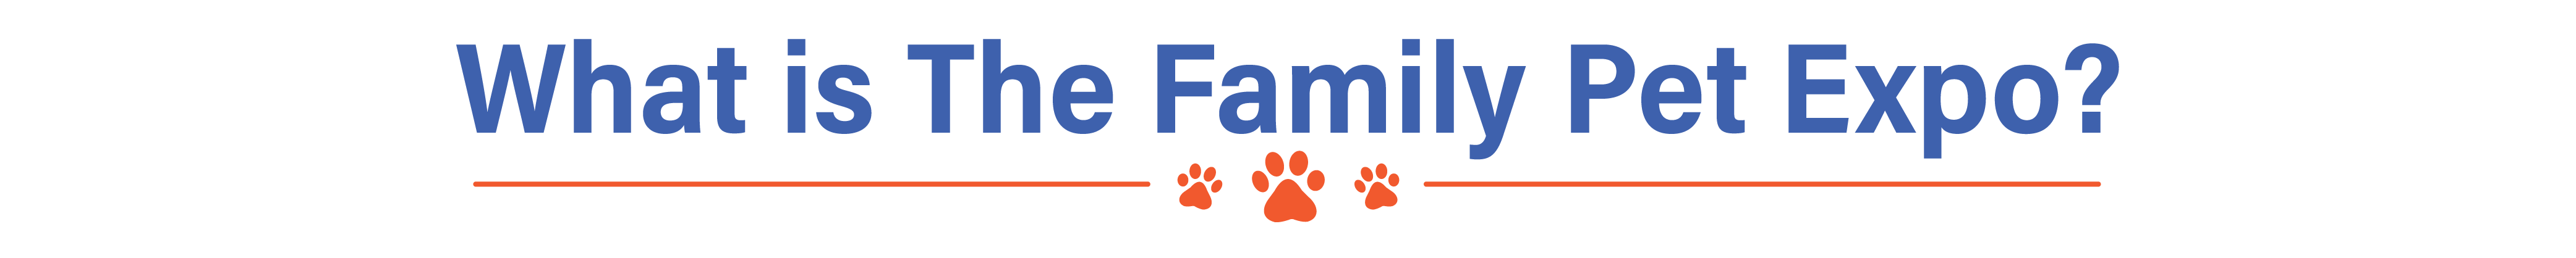 About Family Pet Expo header